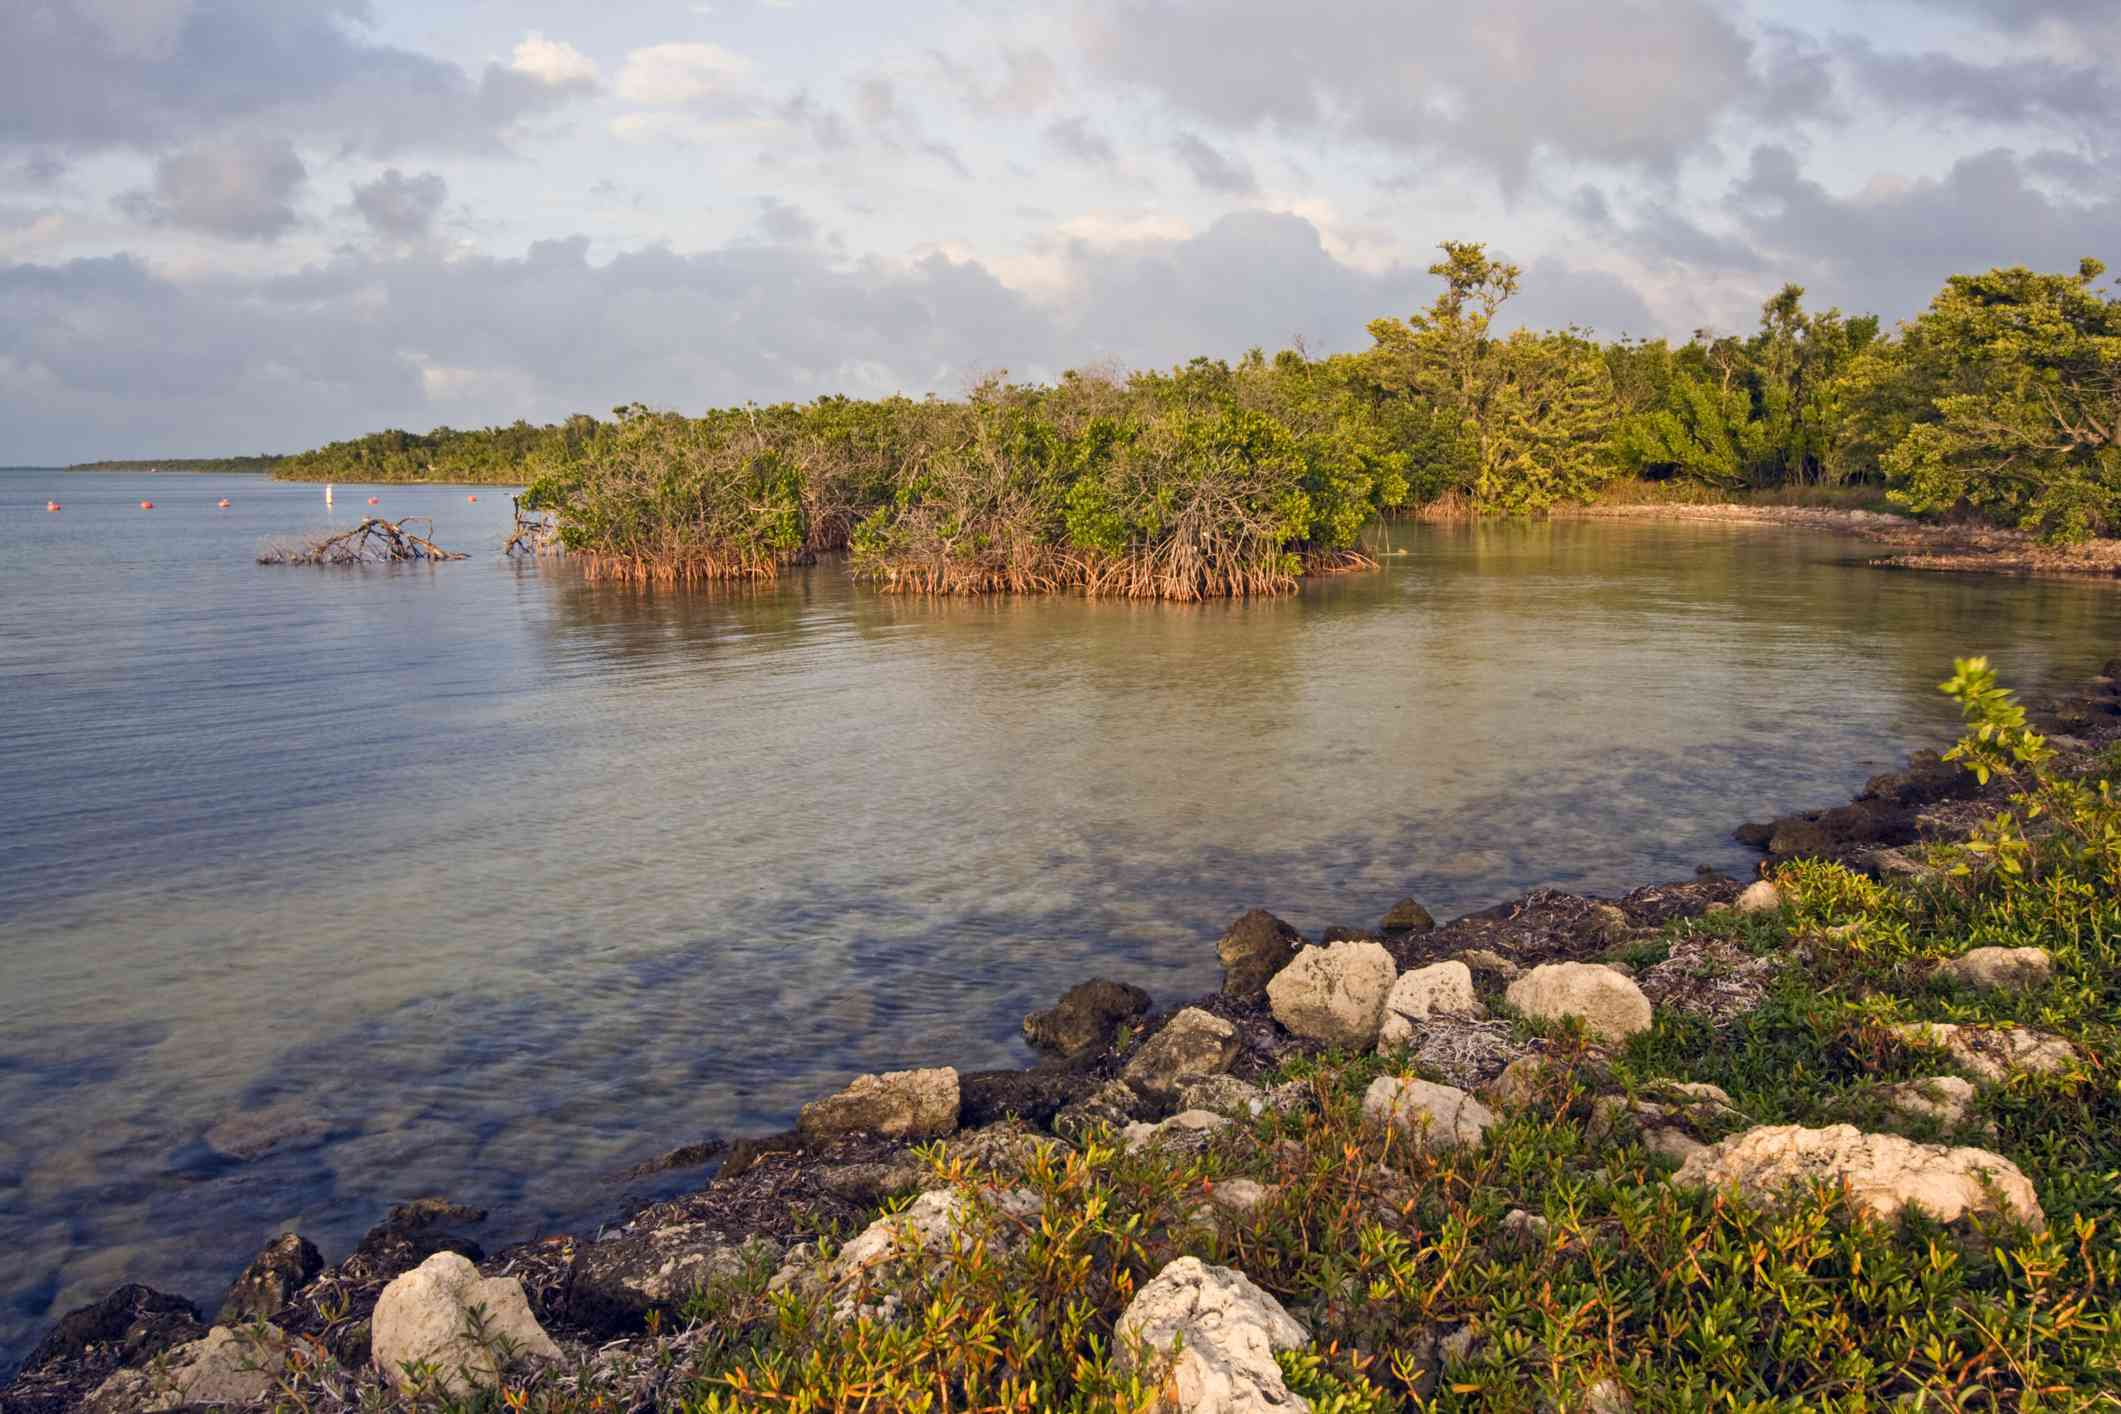 Water and mangroves in Biscayne National Park